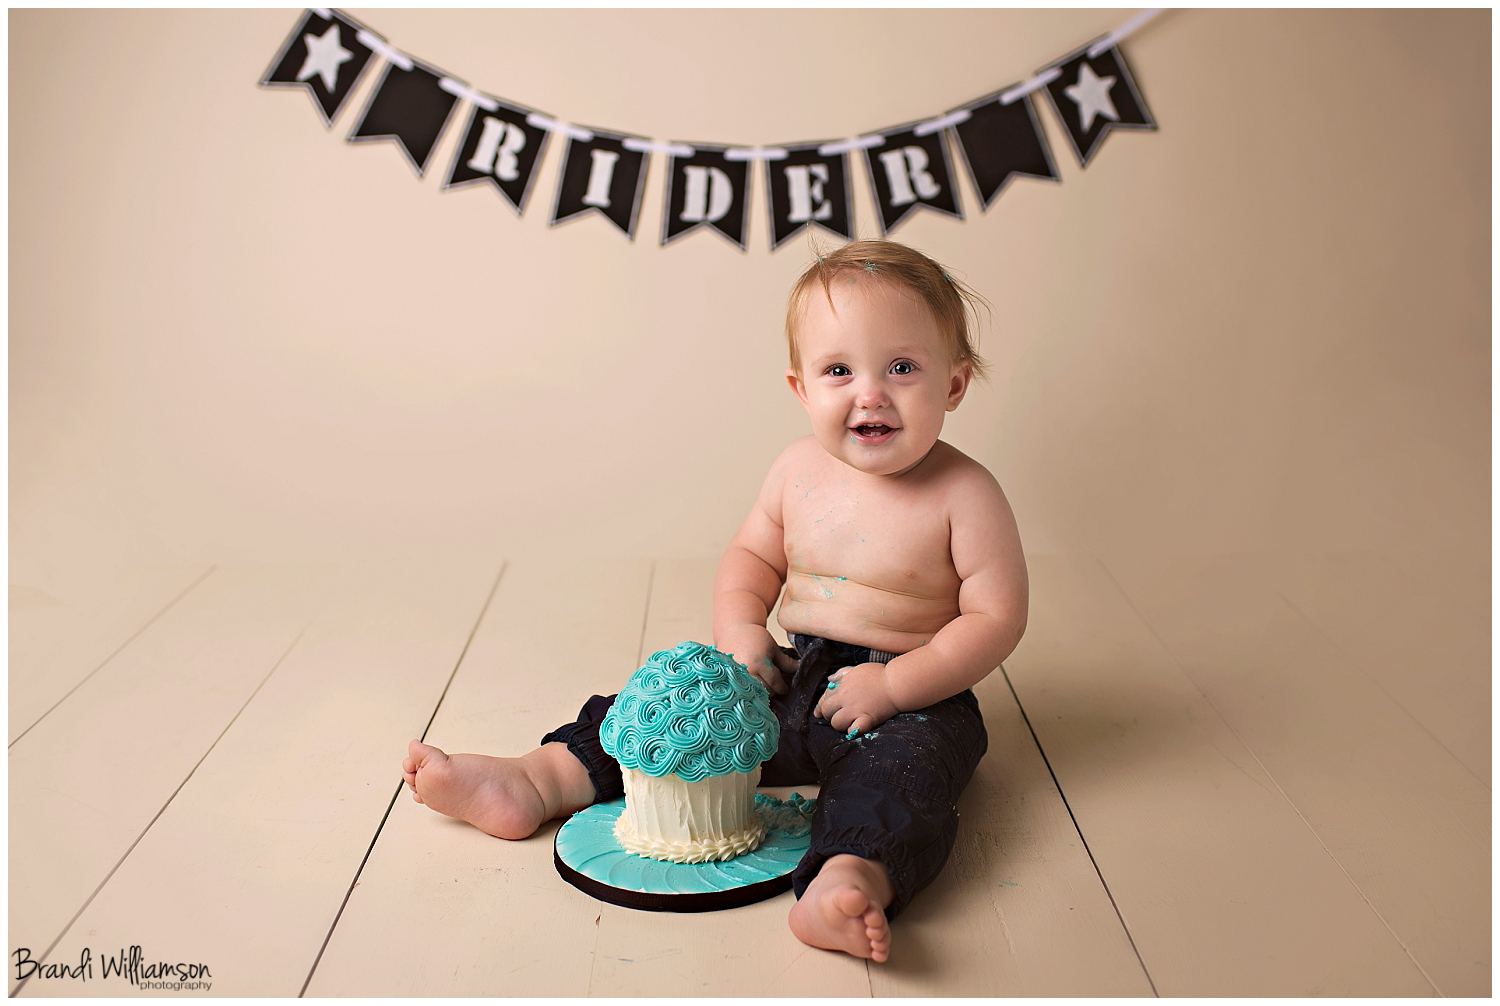 Dover New Philadelphia OH Smash Cake Photographer | rider's giant ...